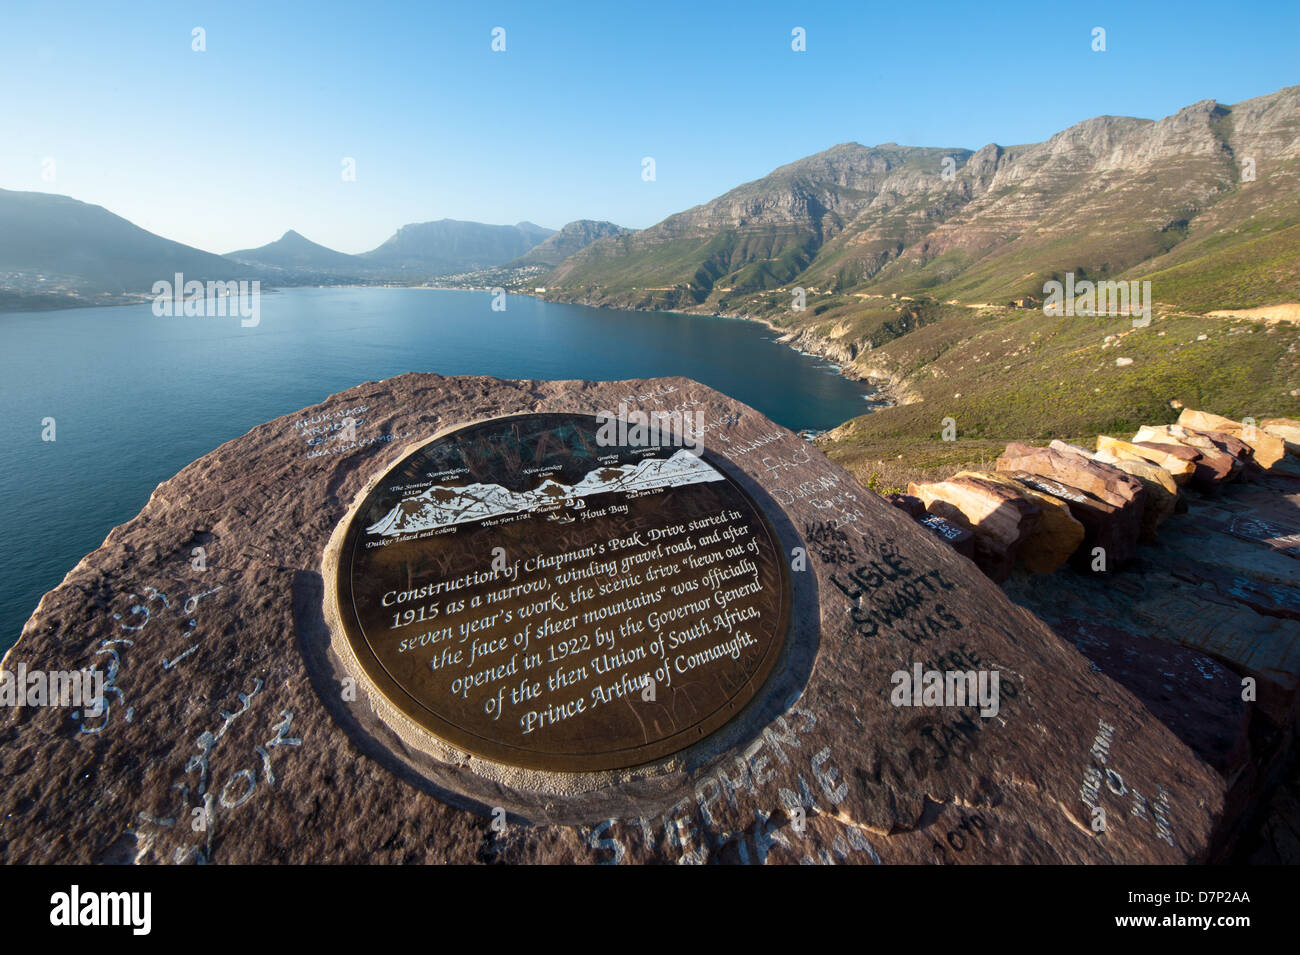 Information plaque at a viewpoint on Chapman's Peak drive, Cape Town, South Africa - Stock Image